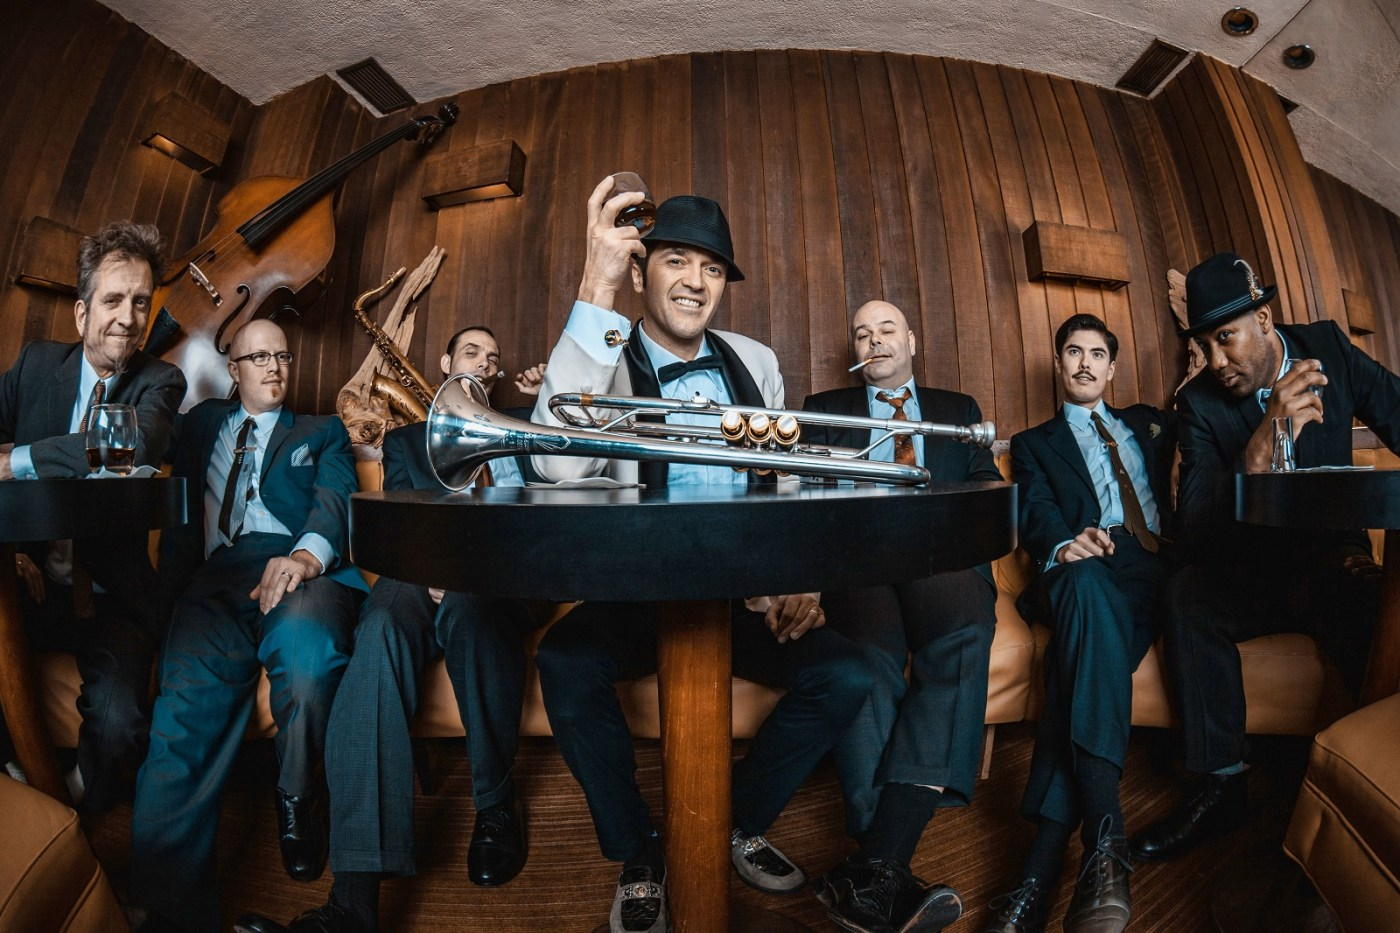 Cherry Poppin' Daddies – Switchin' to Glide